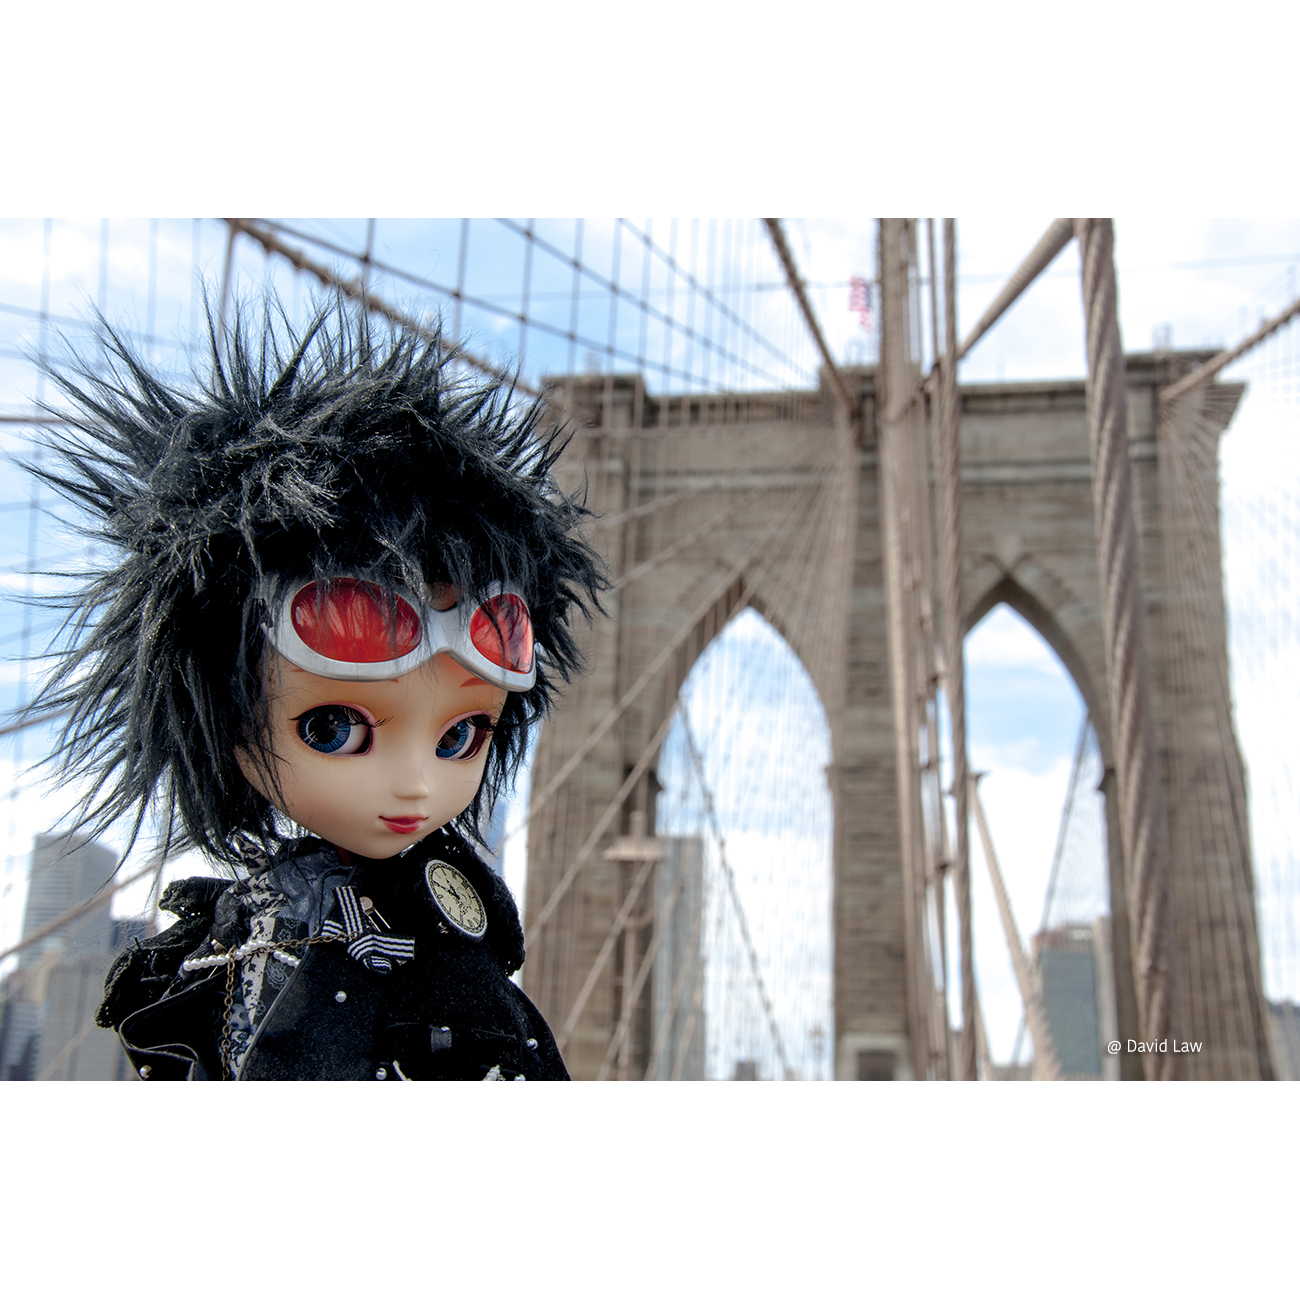 The Brooklyn Bridge Doll 20×30 copie